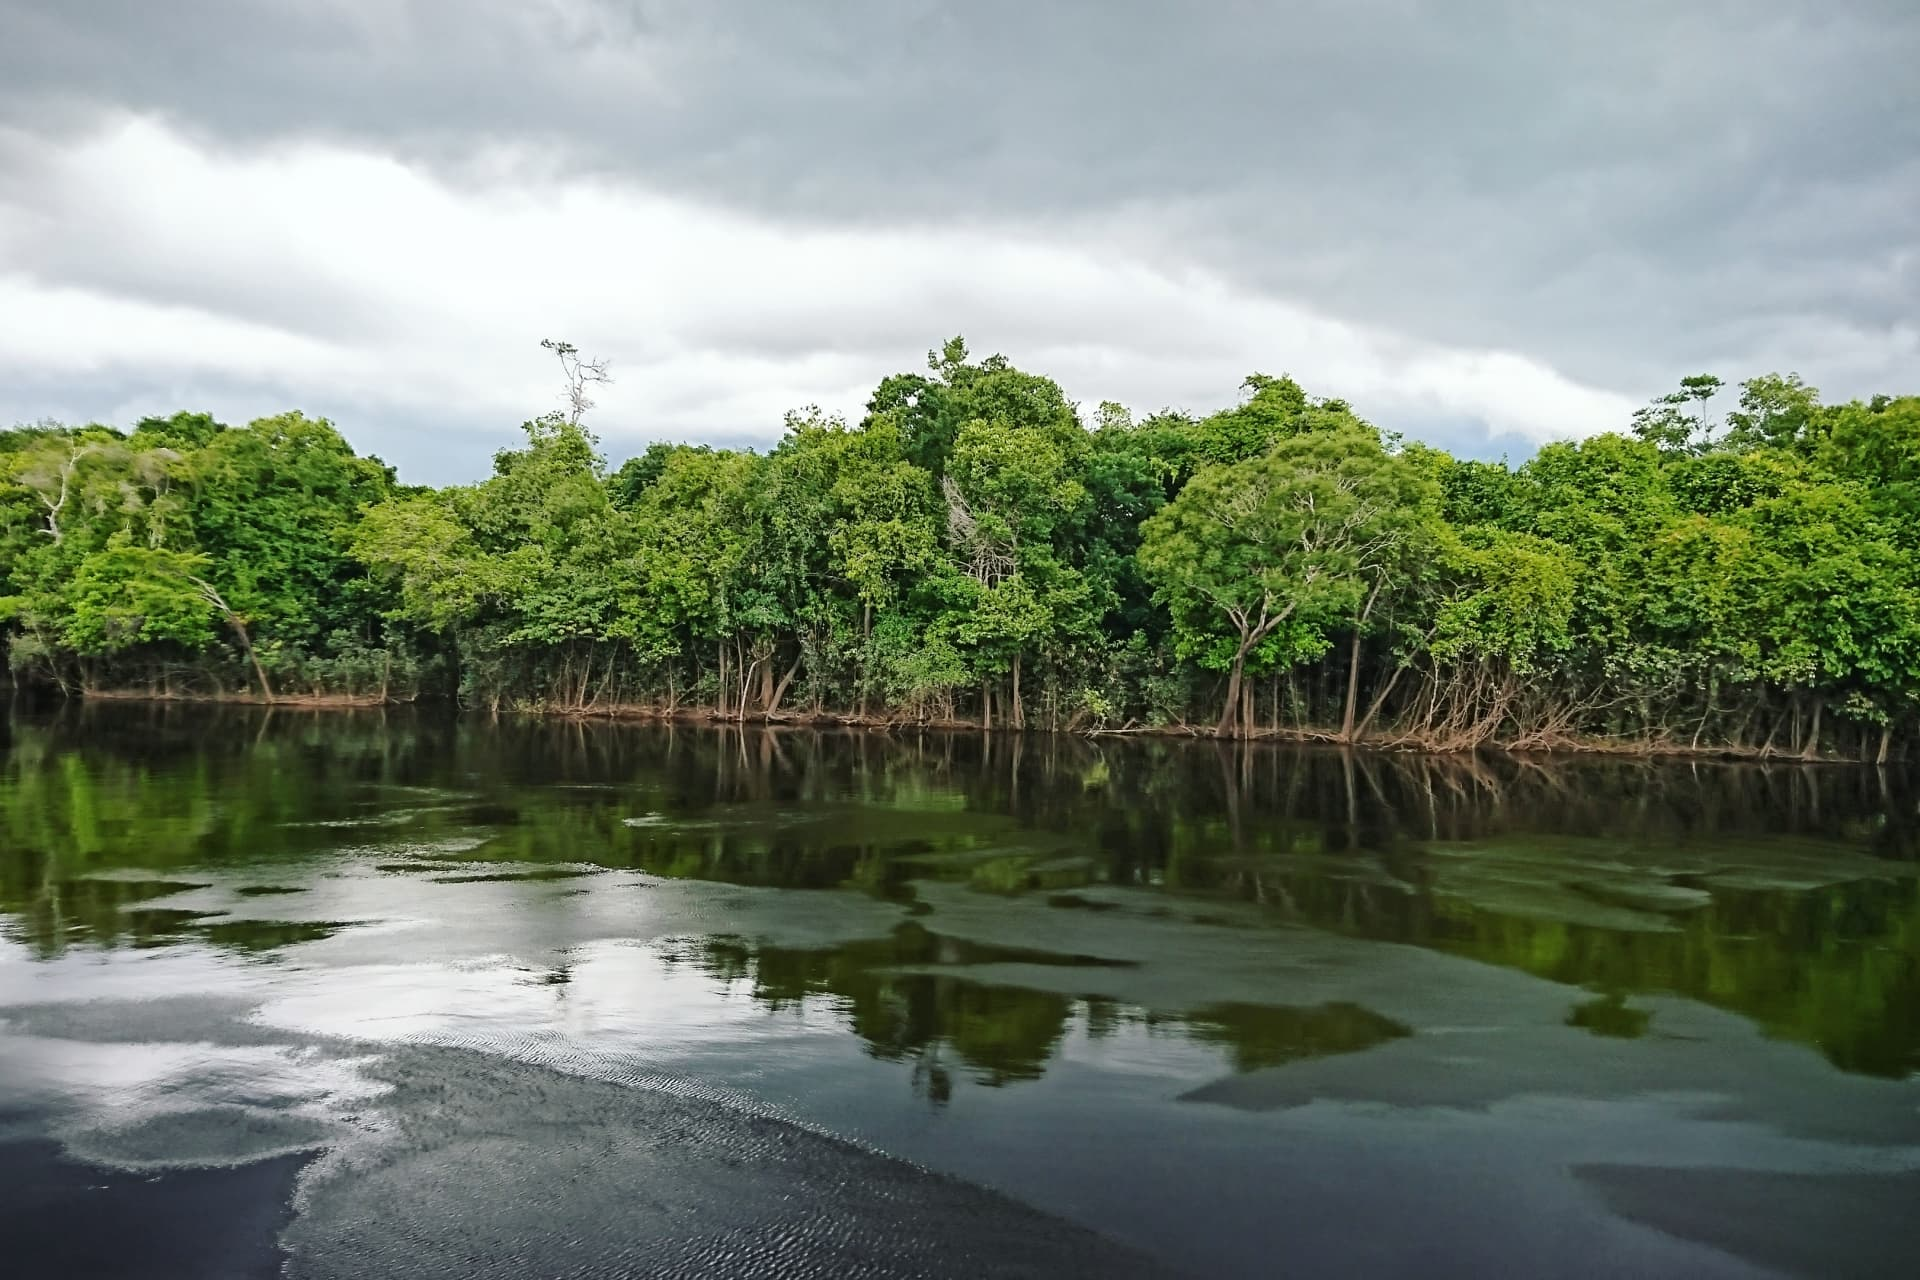 The Rio Negro river and its surroundings, in the Brazilian Amazon, are a great source of inspiration for Elin.